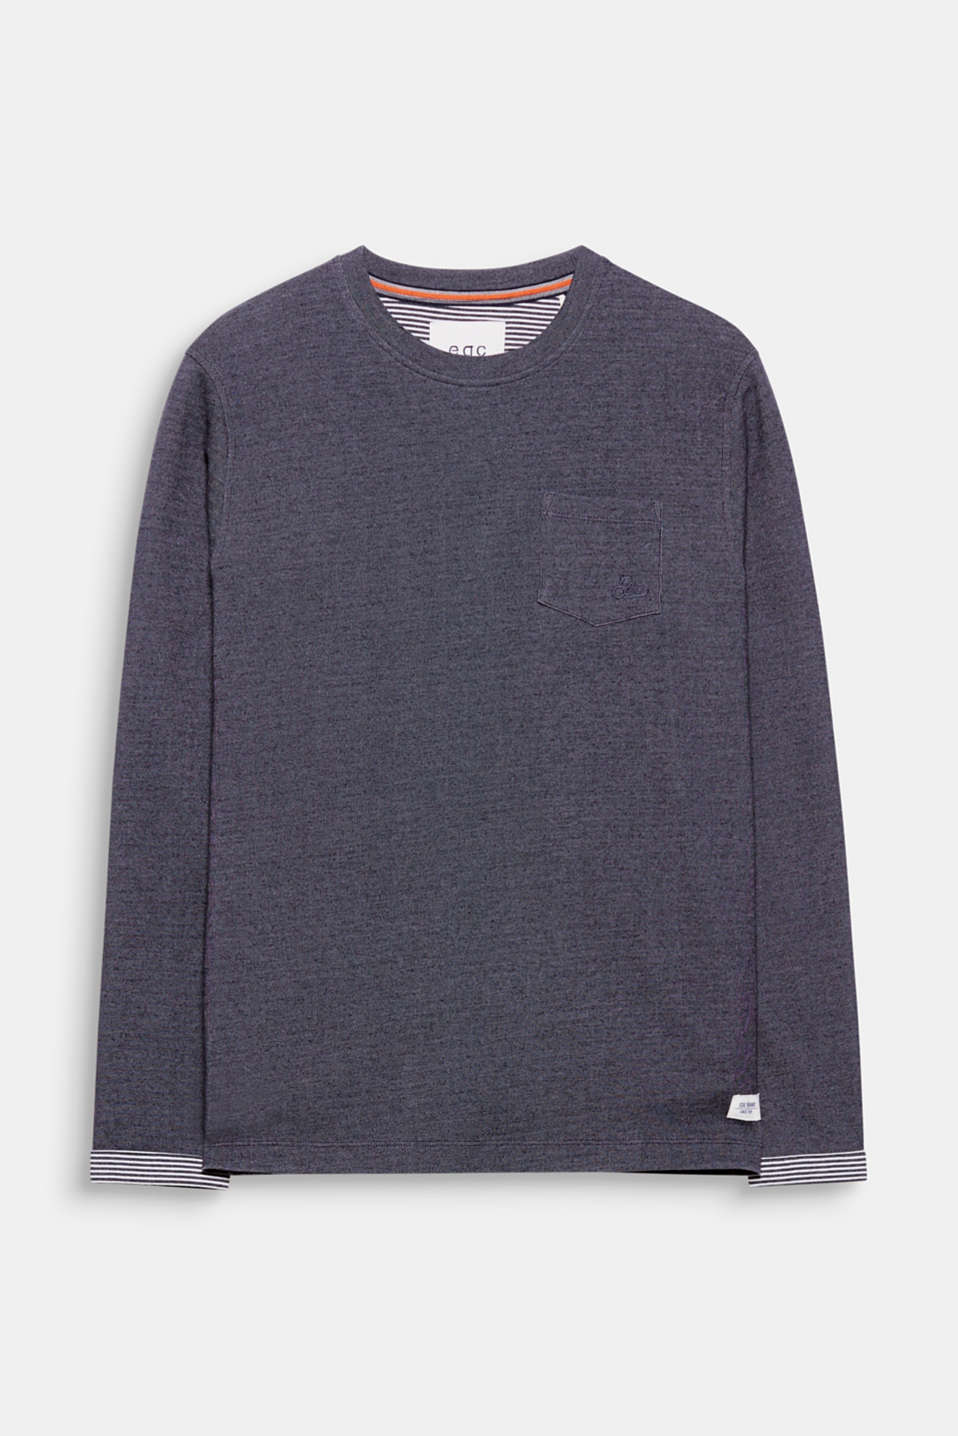 For your urban look! Sweatshirt fabric with a subtle melange finish gives this sweatshirt its unique look.